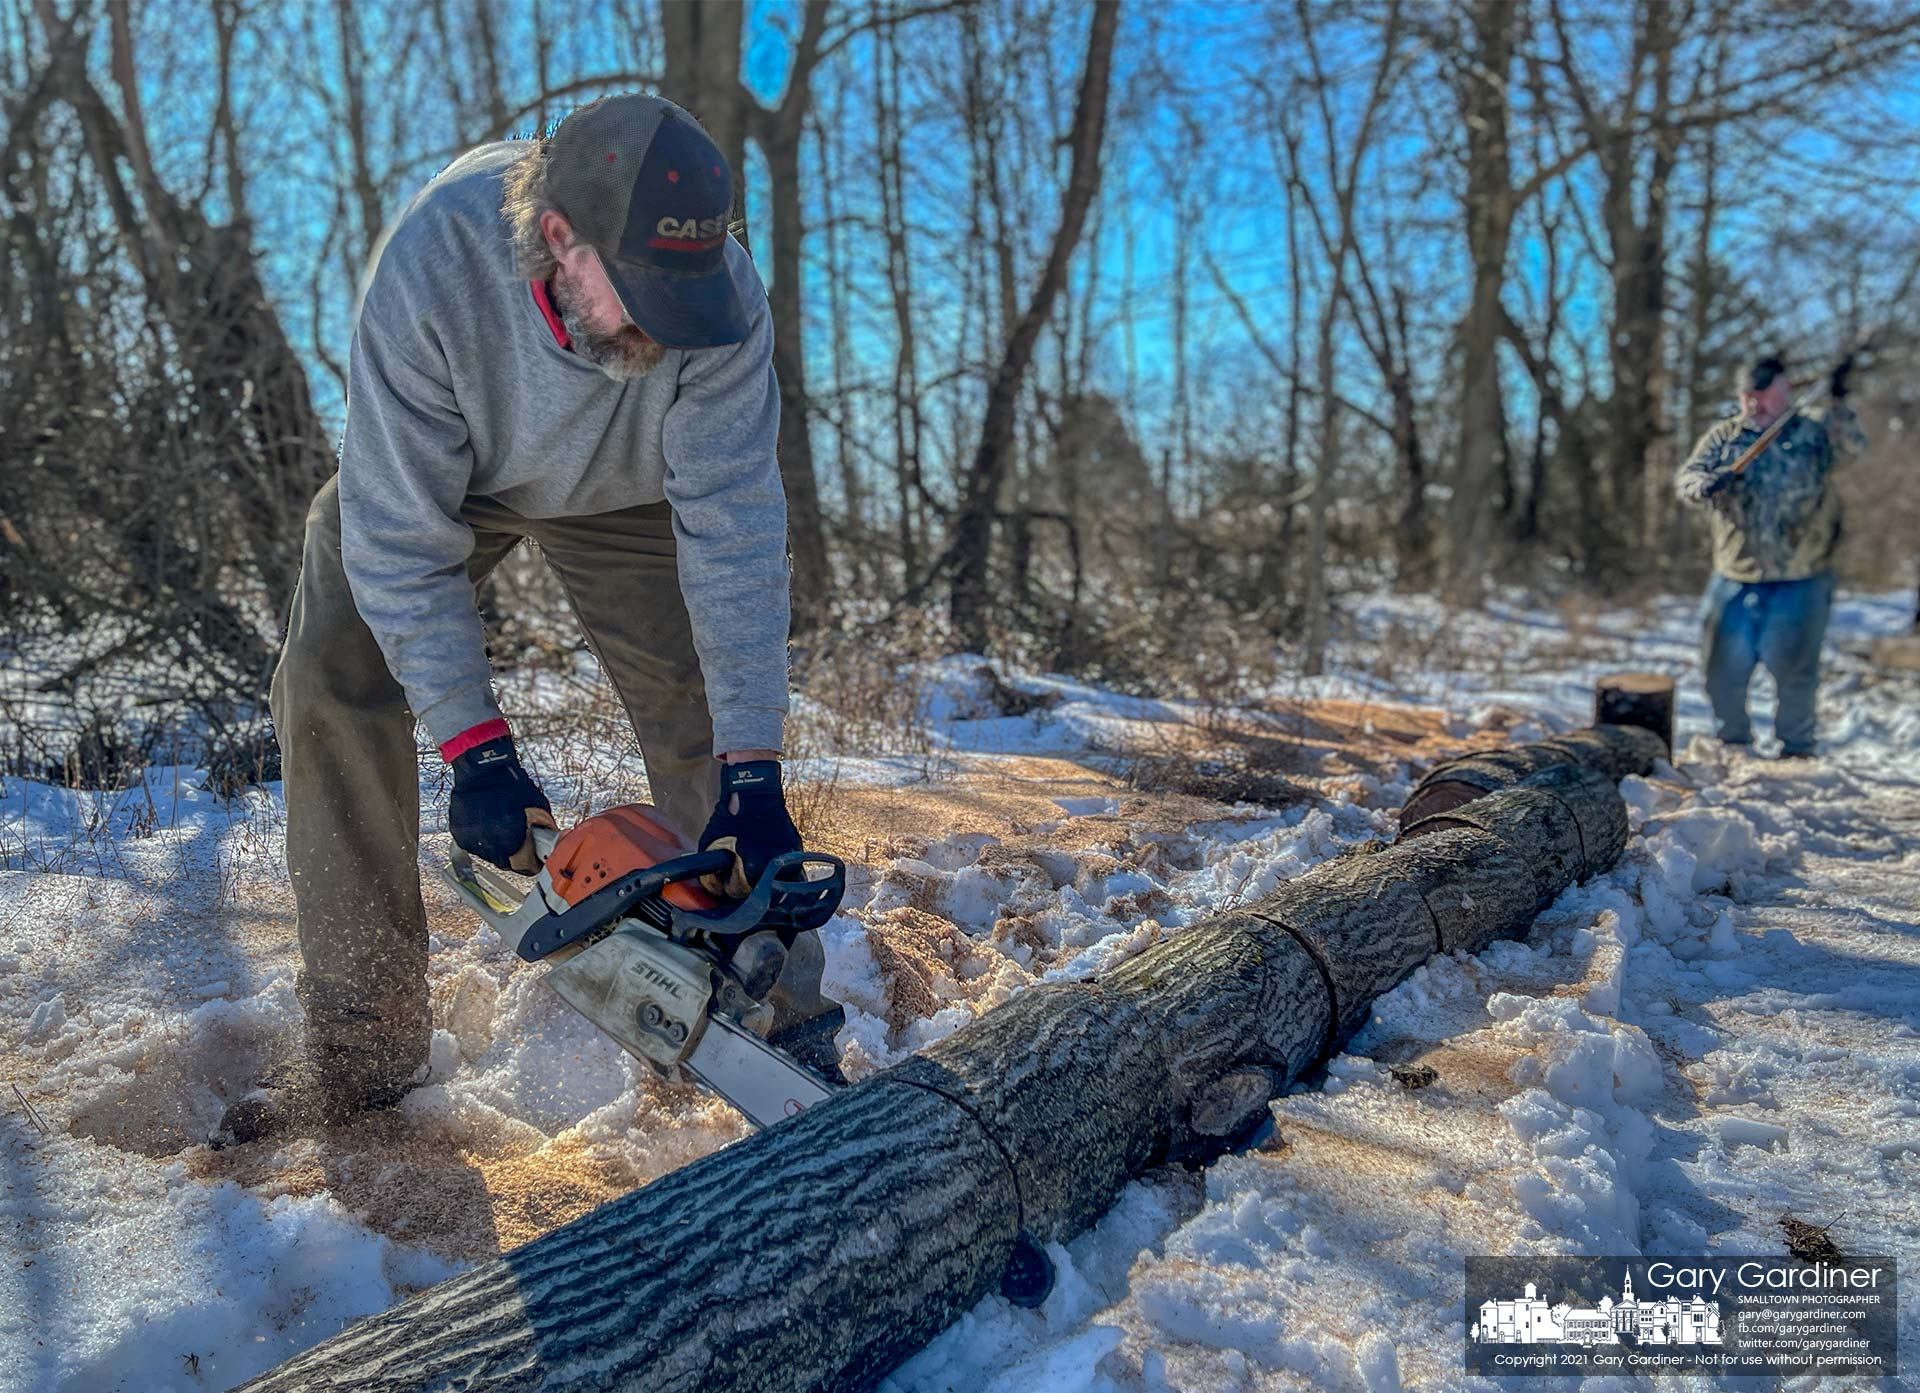 Rodney Parker and Kevin Scott cut and split firewood harvested from a field on Africa Road. My Final Photo for Feb. 23, 2021.